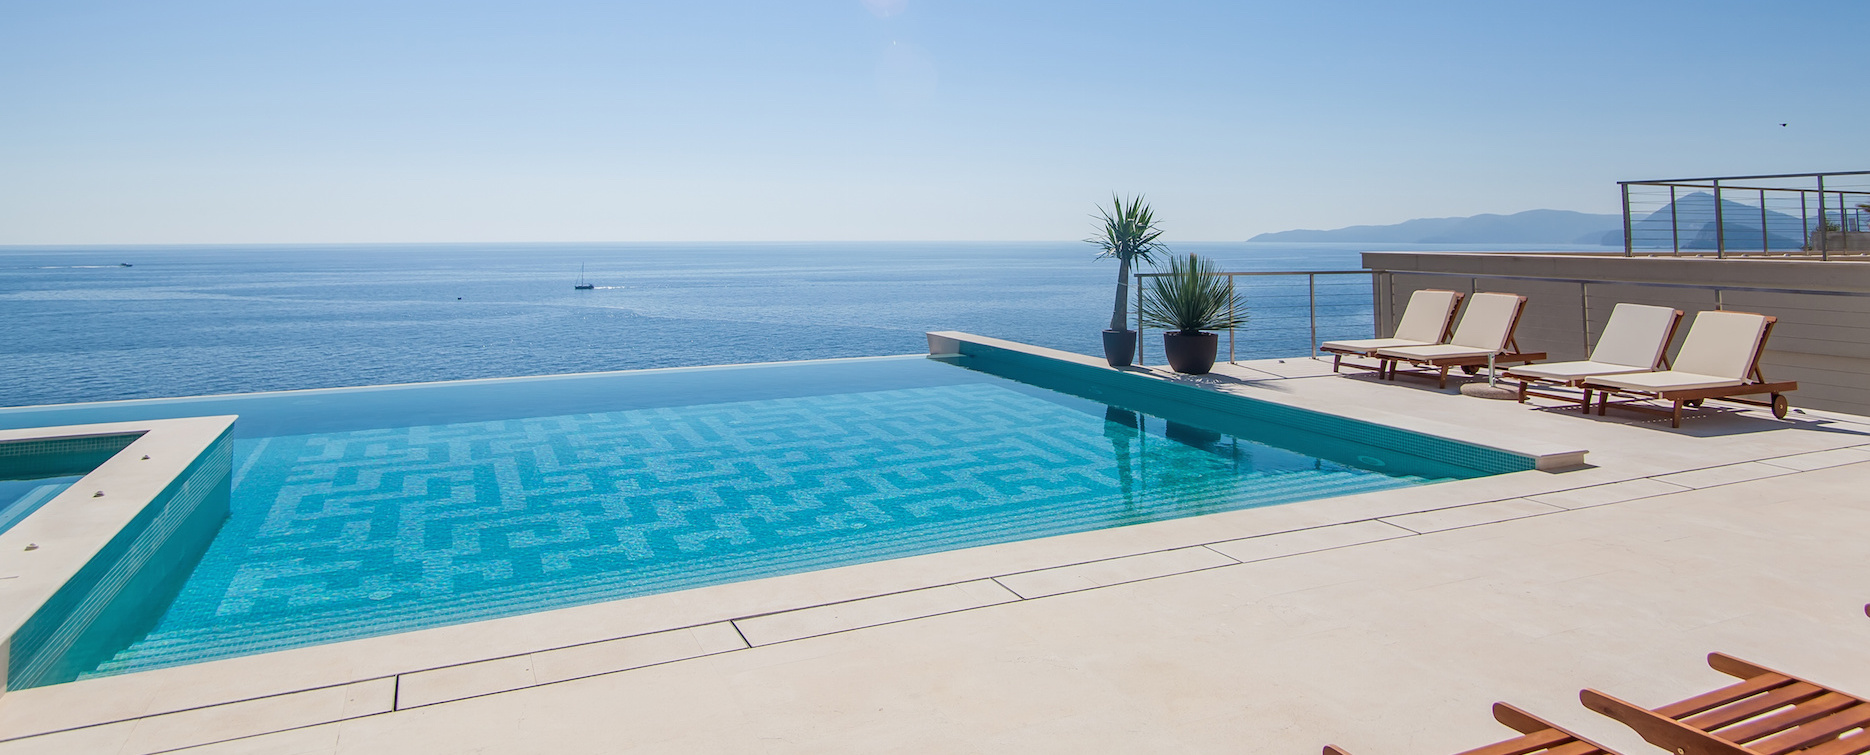 Rent a villa with a private swimming pool villanovo for California private swimming pool code